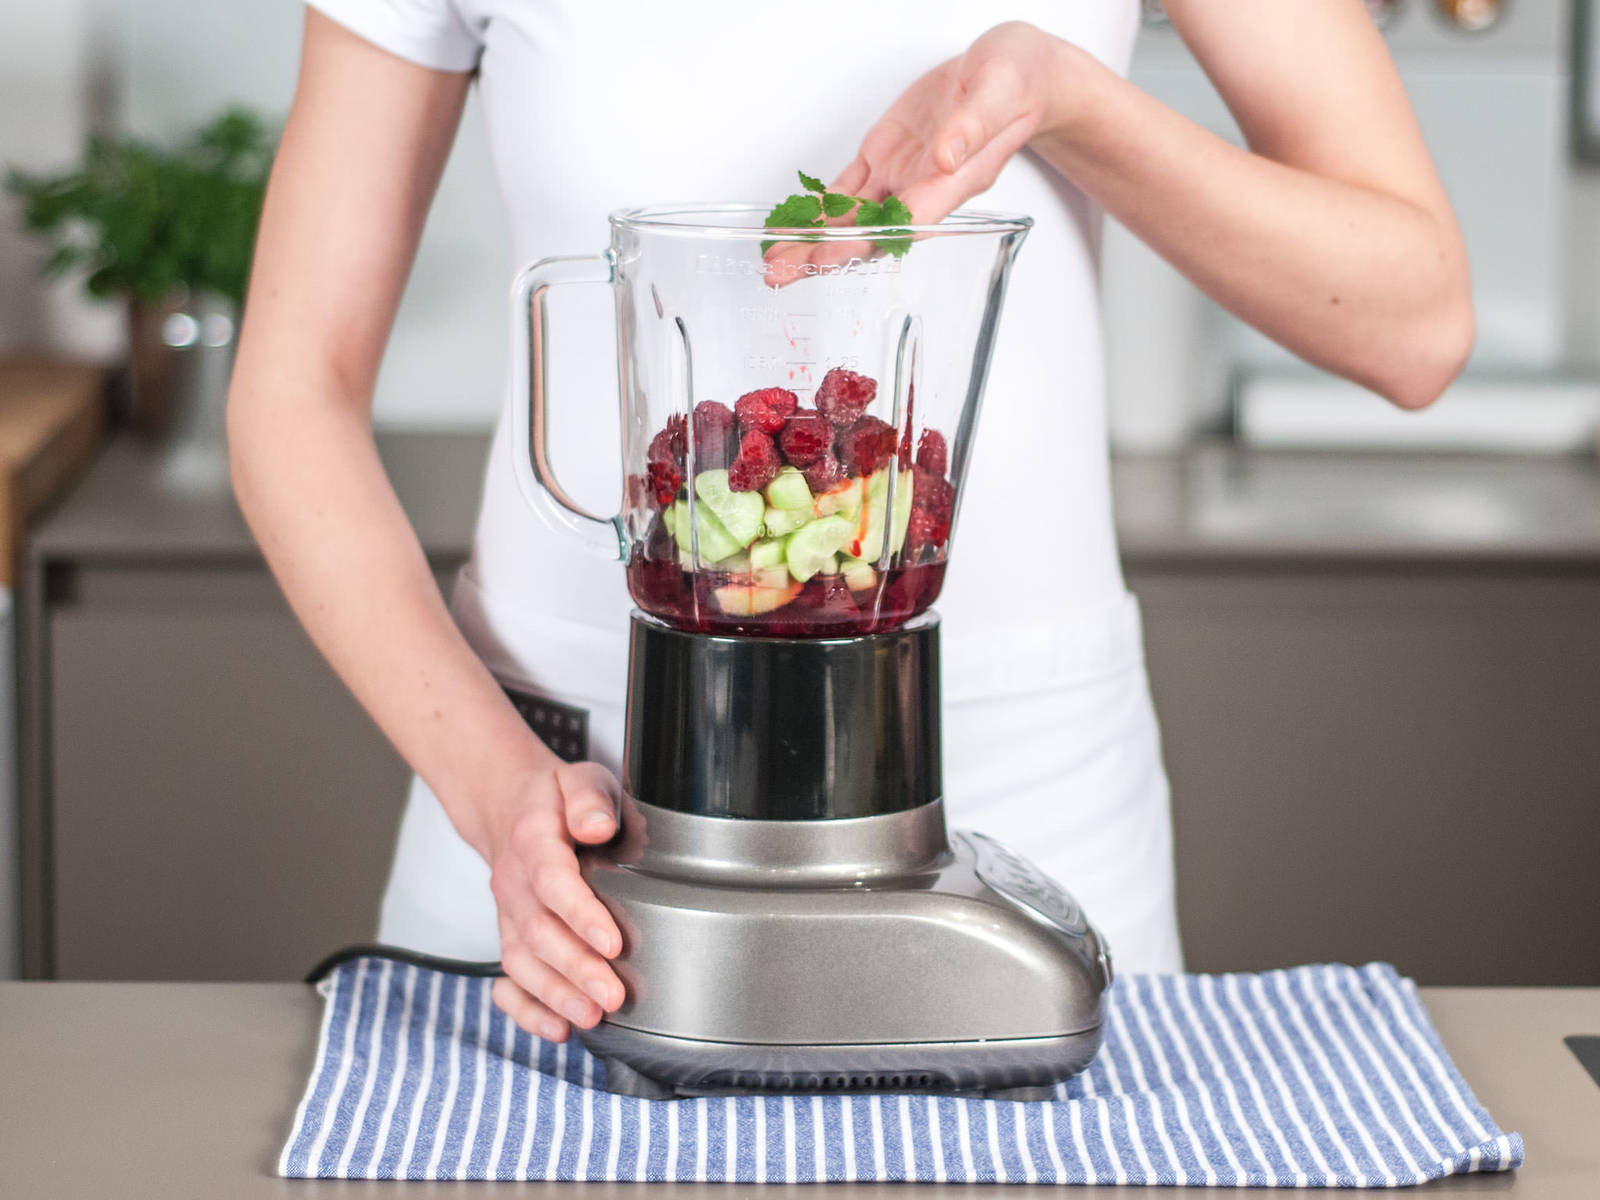 Place cucumber, red beets, frozen raspberries, agave syrup, and water into blender. Pick mint leaves and add to blender.